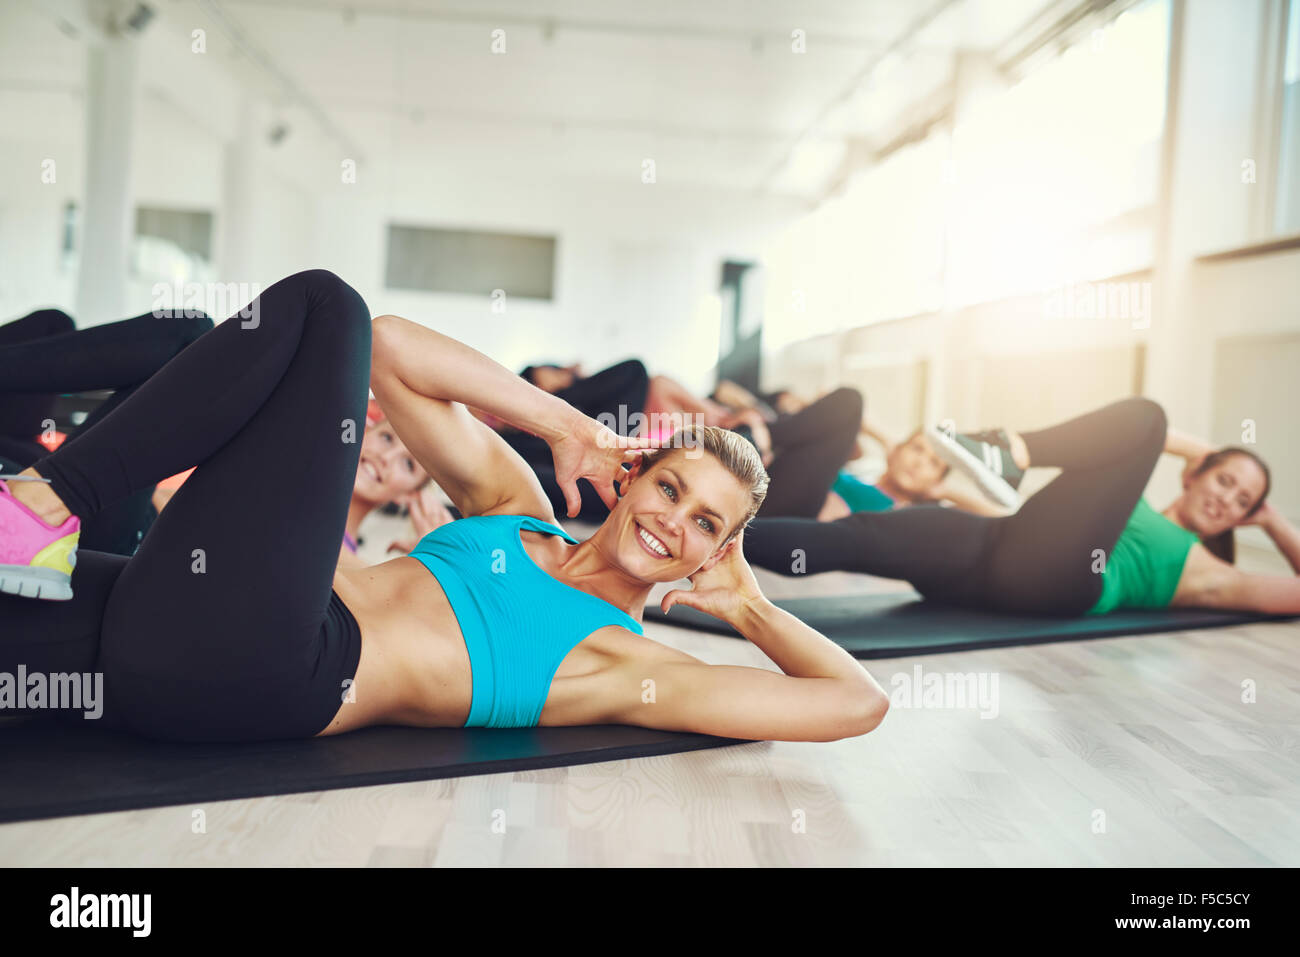 Smiling attractive young woman doing aerobics in the gym with a group of young women in a health and fitness concept - Stock Image